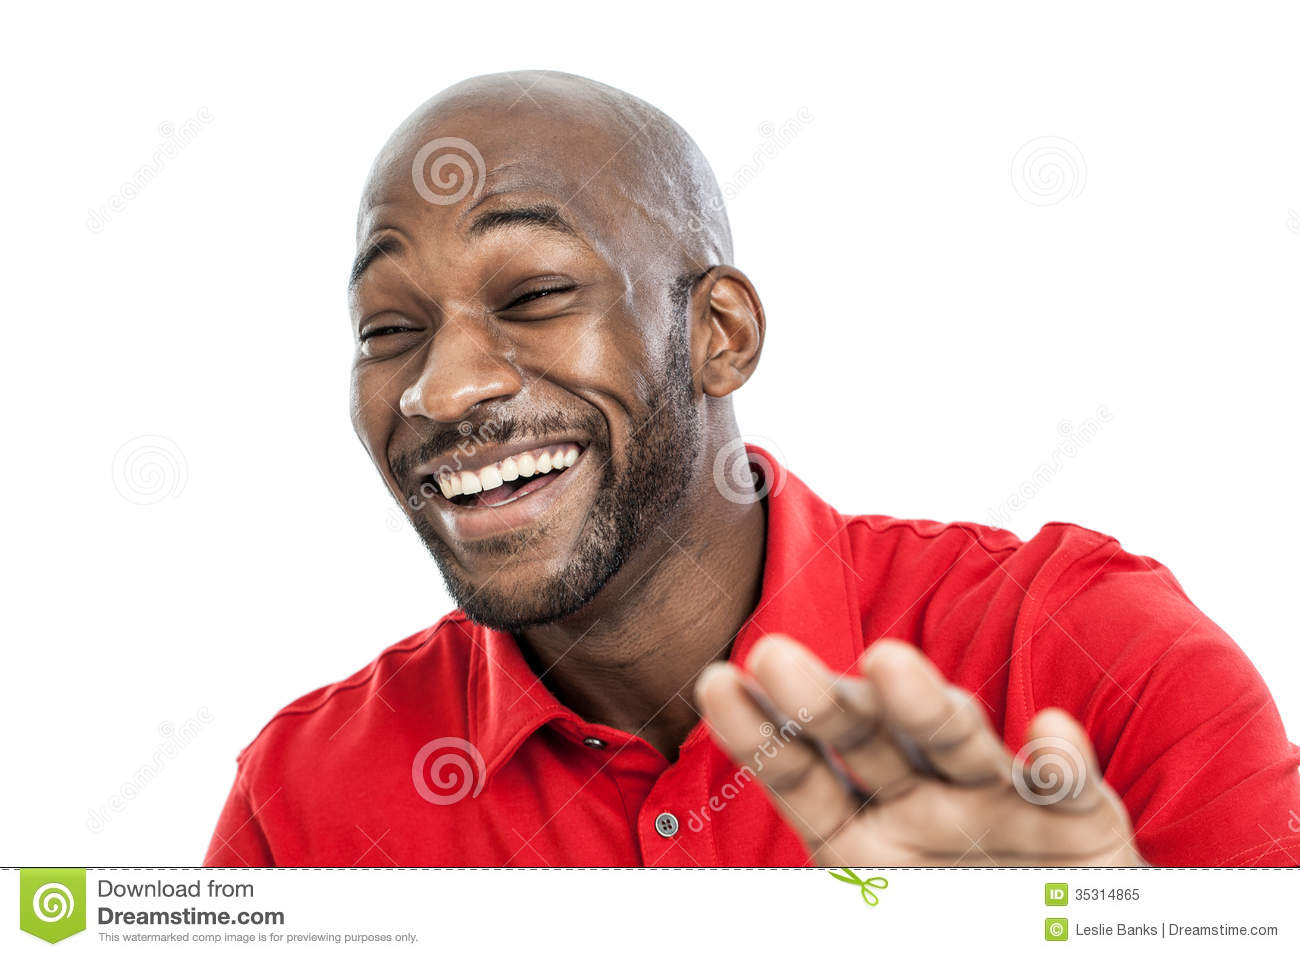 black-man-laughing-portrait-late-s-handsome-isolated-white-background-35314865.jpg